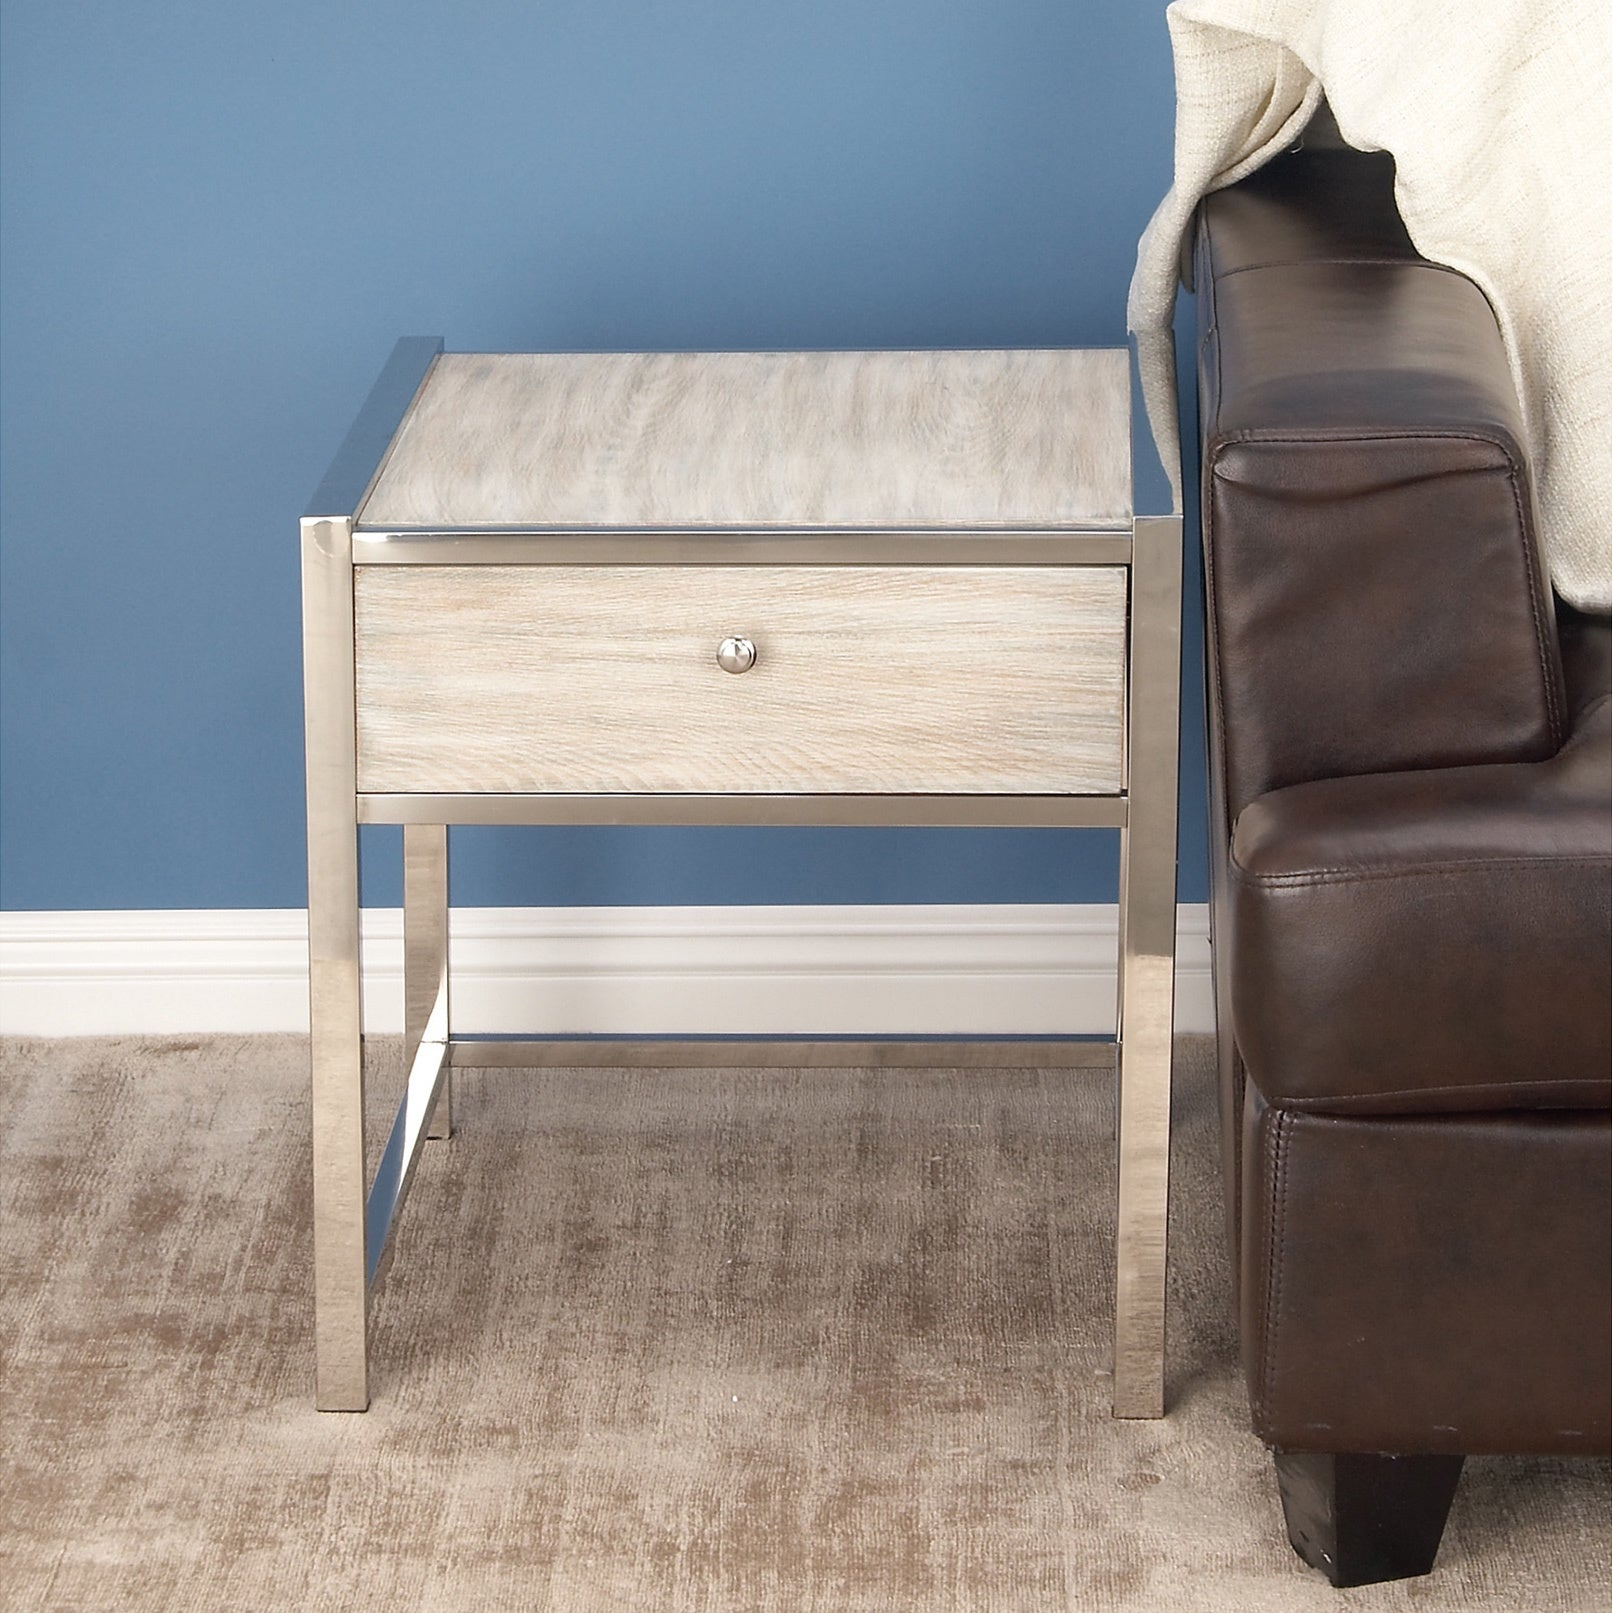 urban accents furniture. Urban Designs Delaney White Wash Wood End And Accent Table - Free Shipping Today Overstock 21035851 Accents Furniture